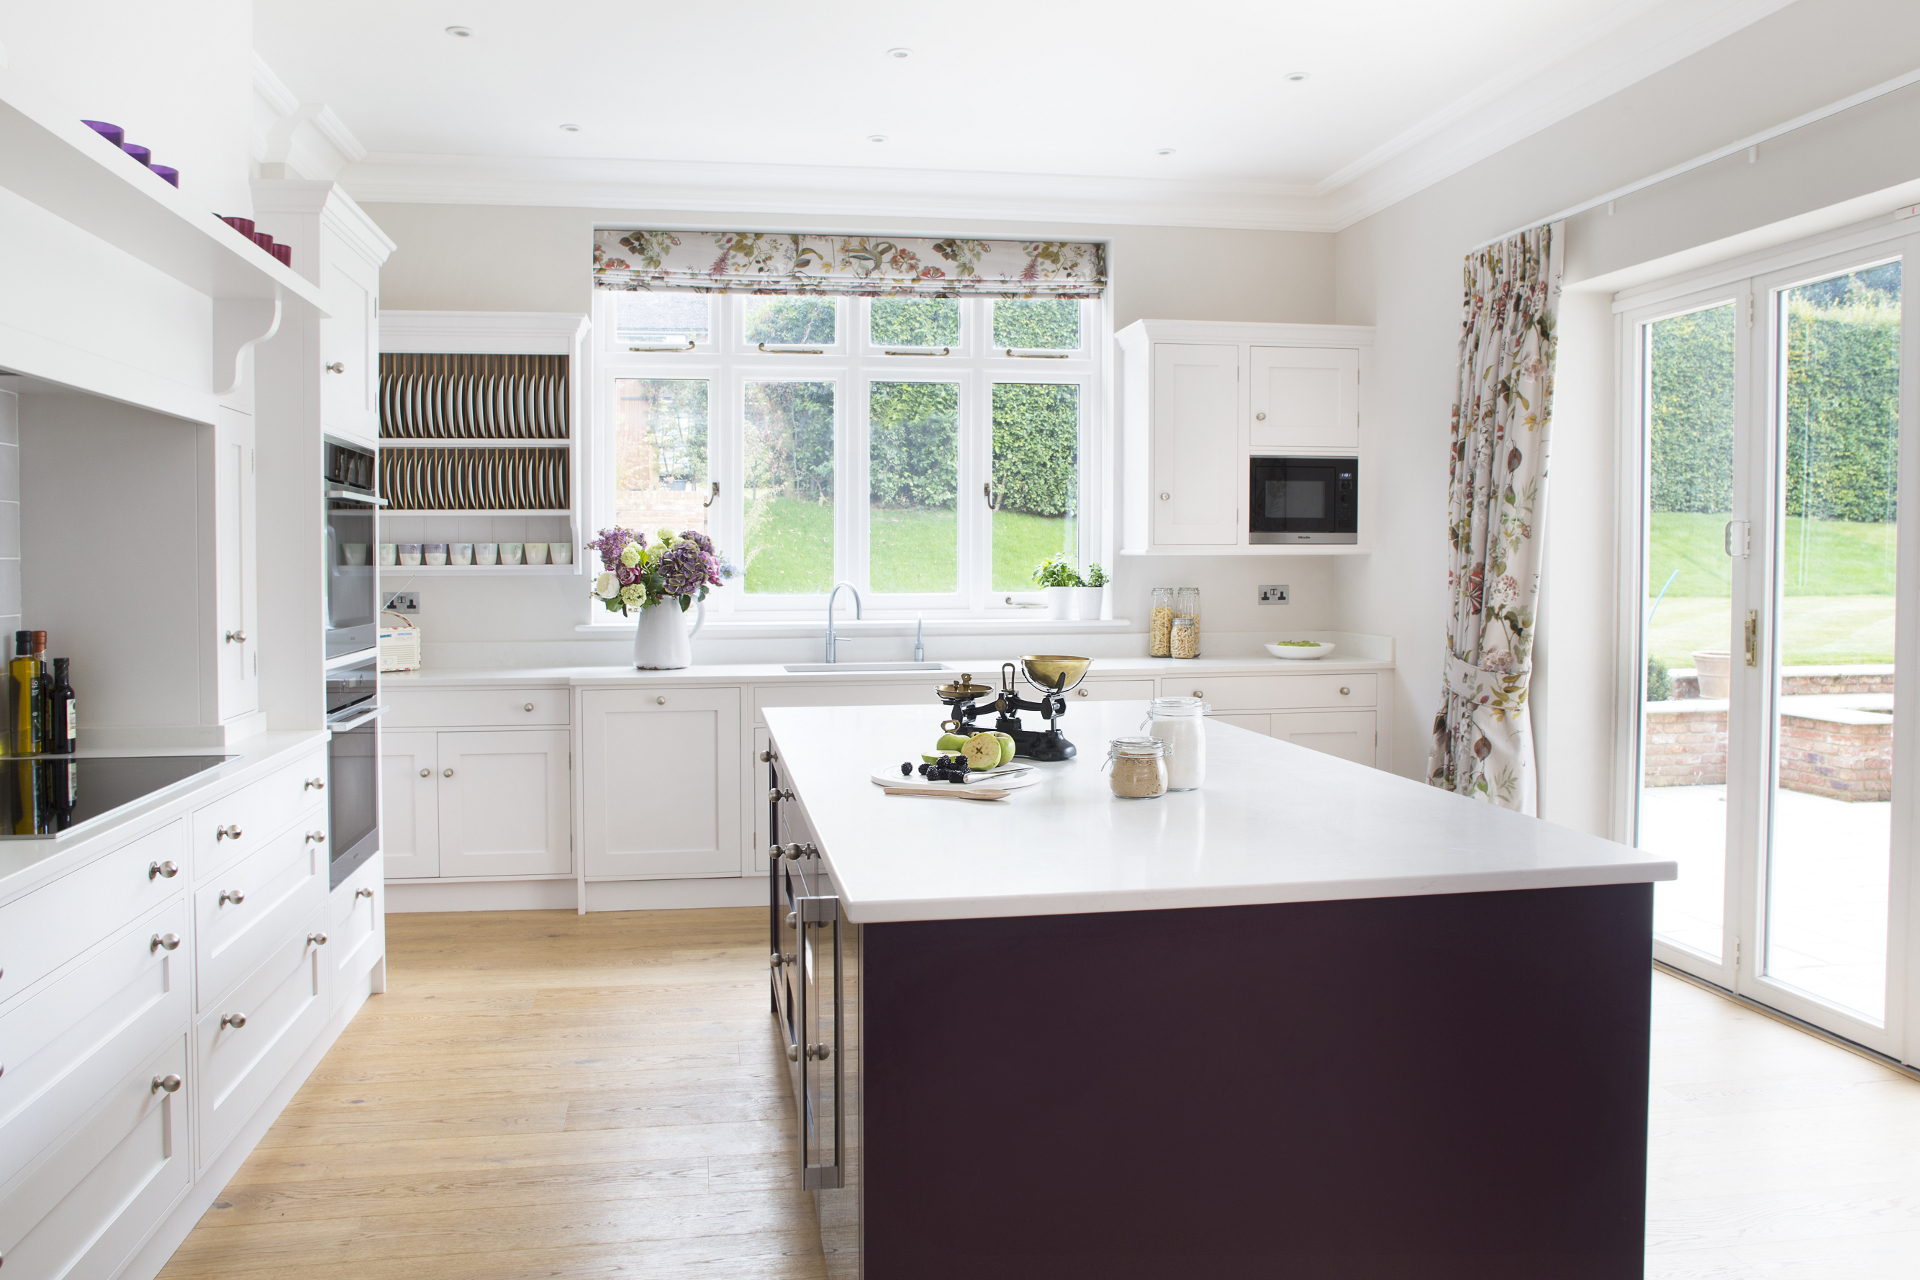 Rencraft | Handmade Kitchens and Furniture